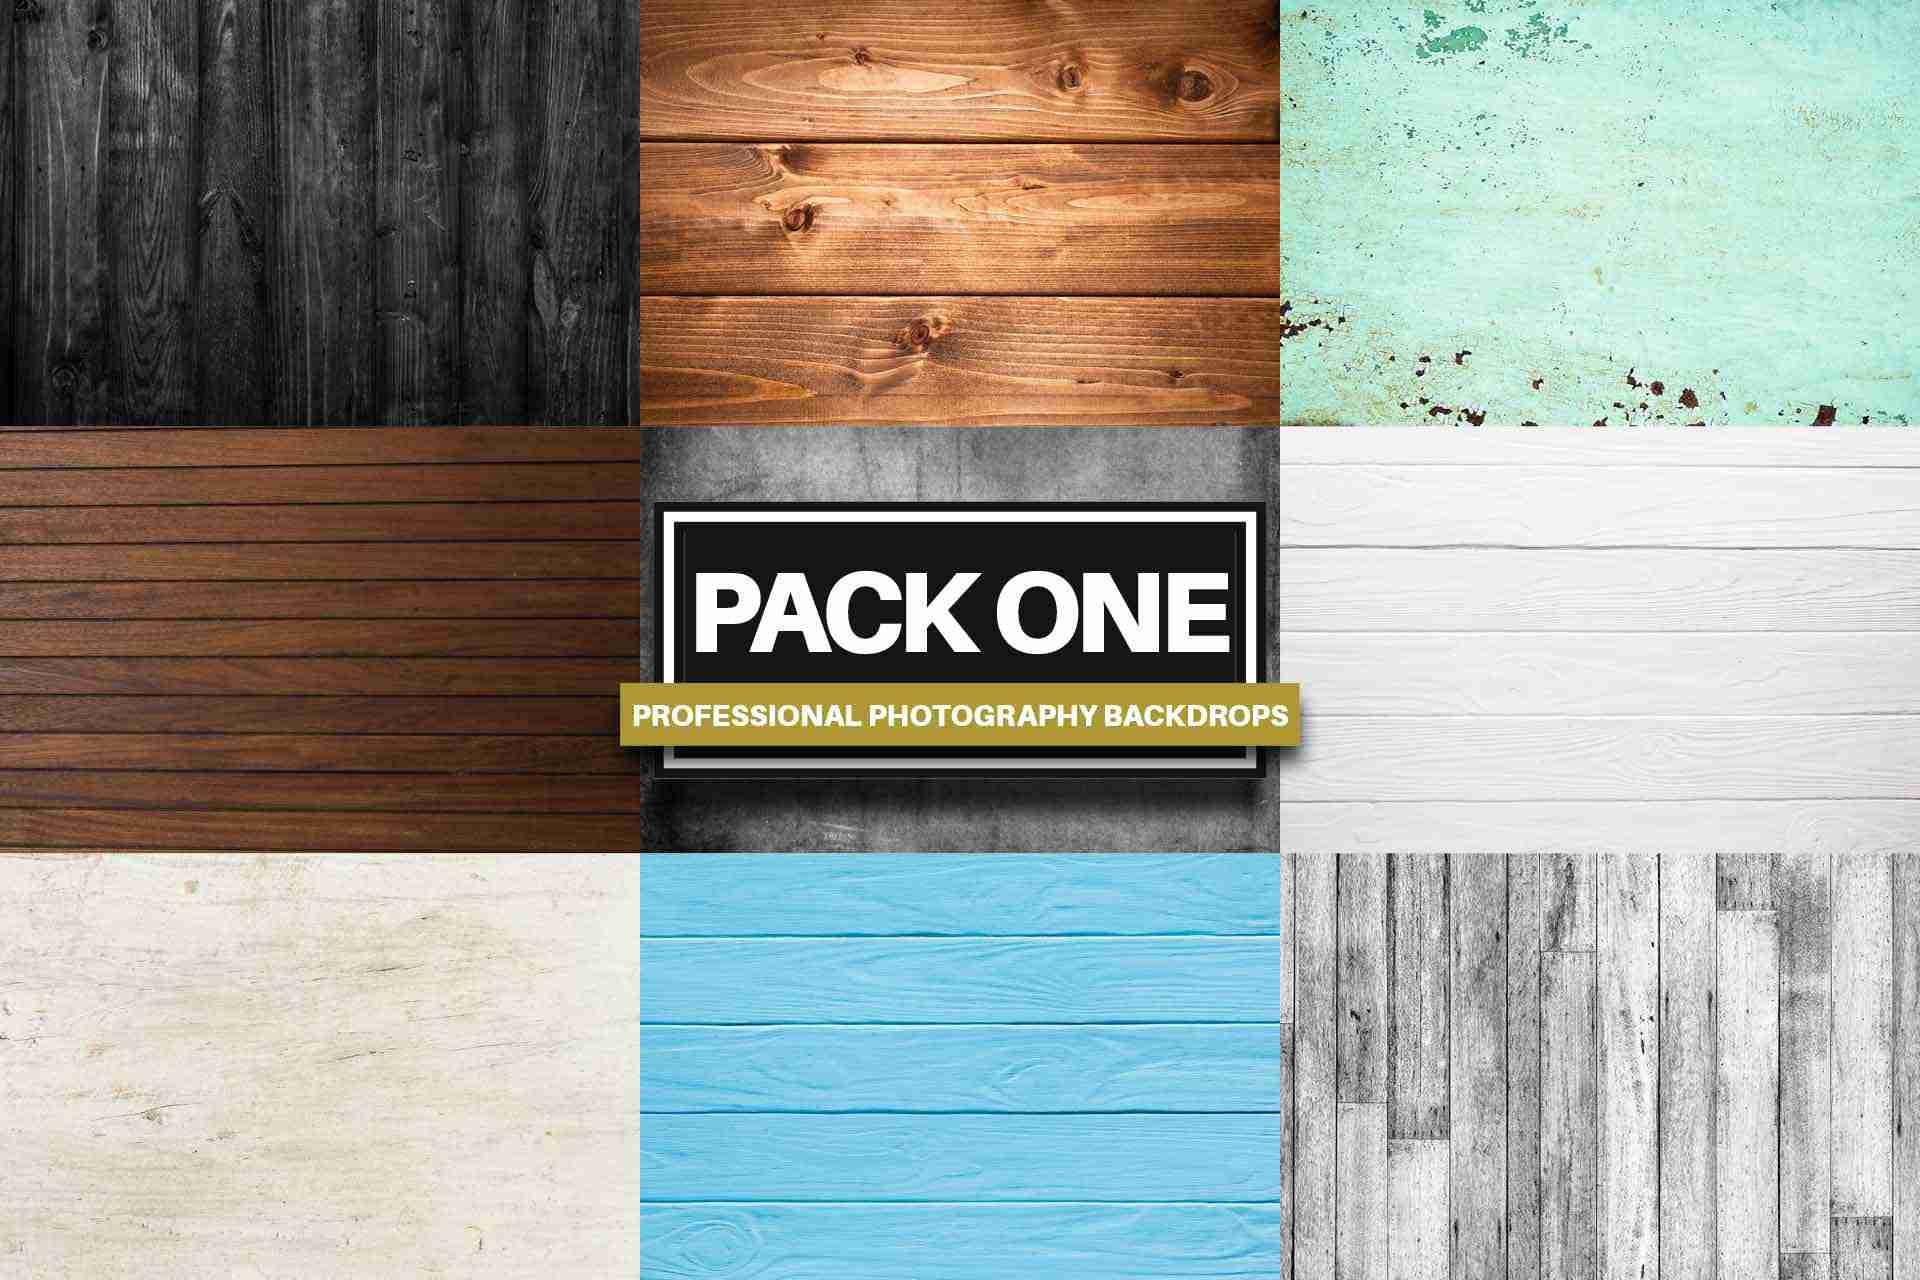 A2-Waterproof-Photographic-Backdrops-Pack1-2